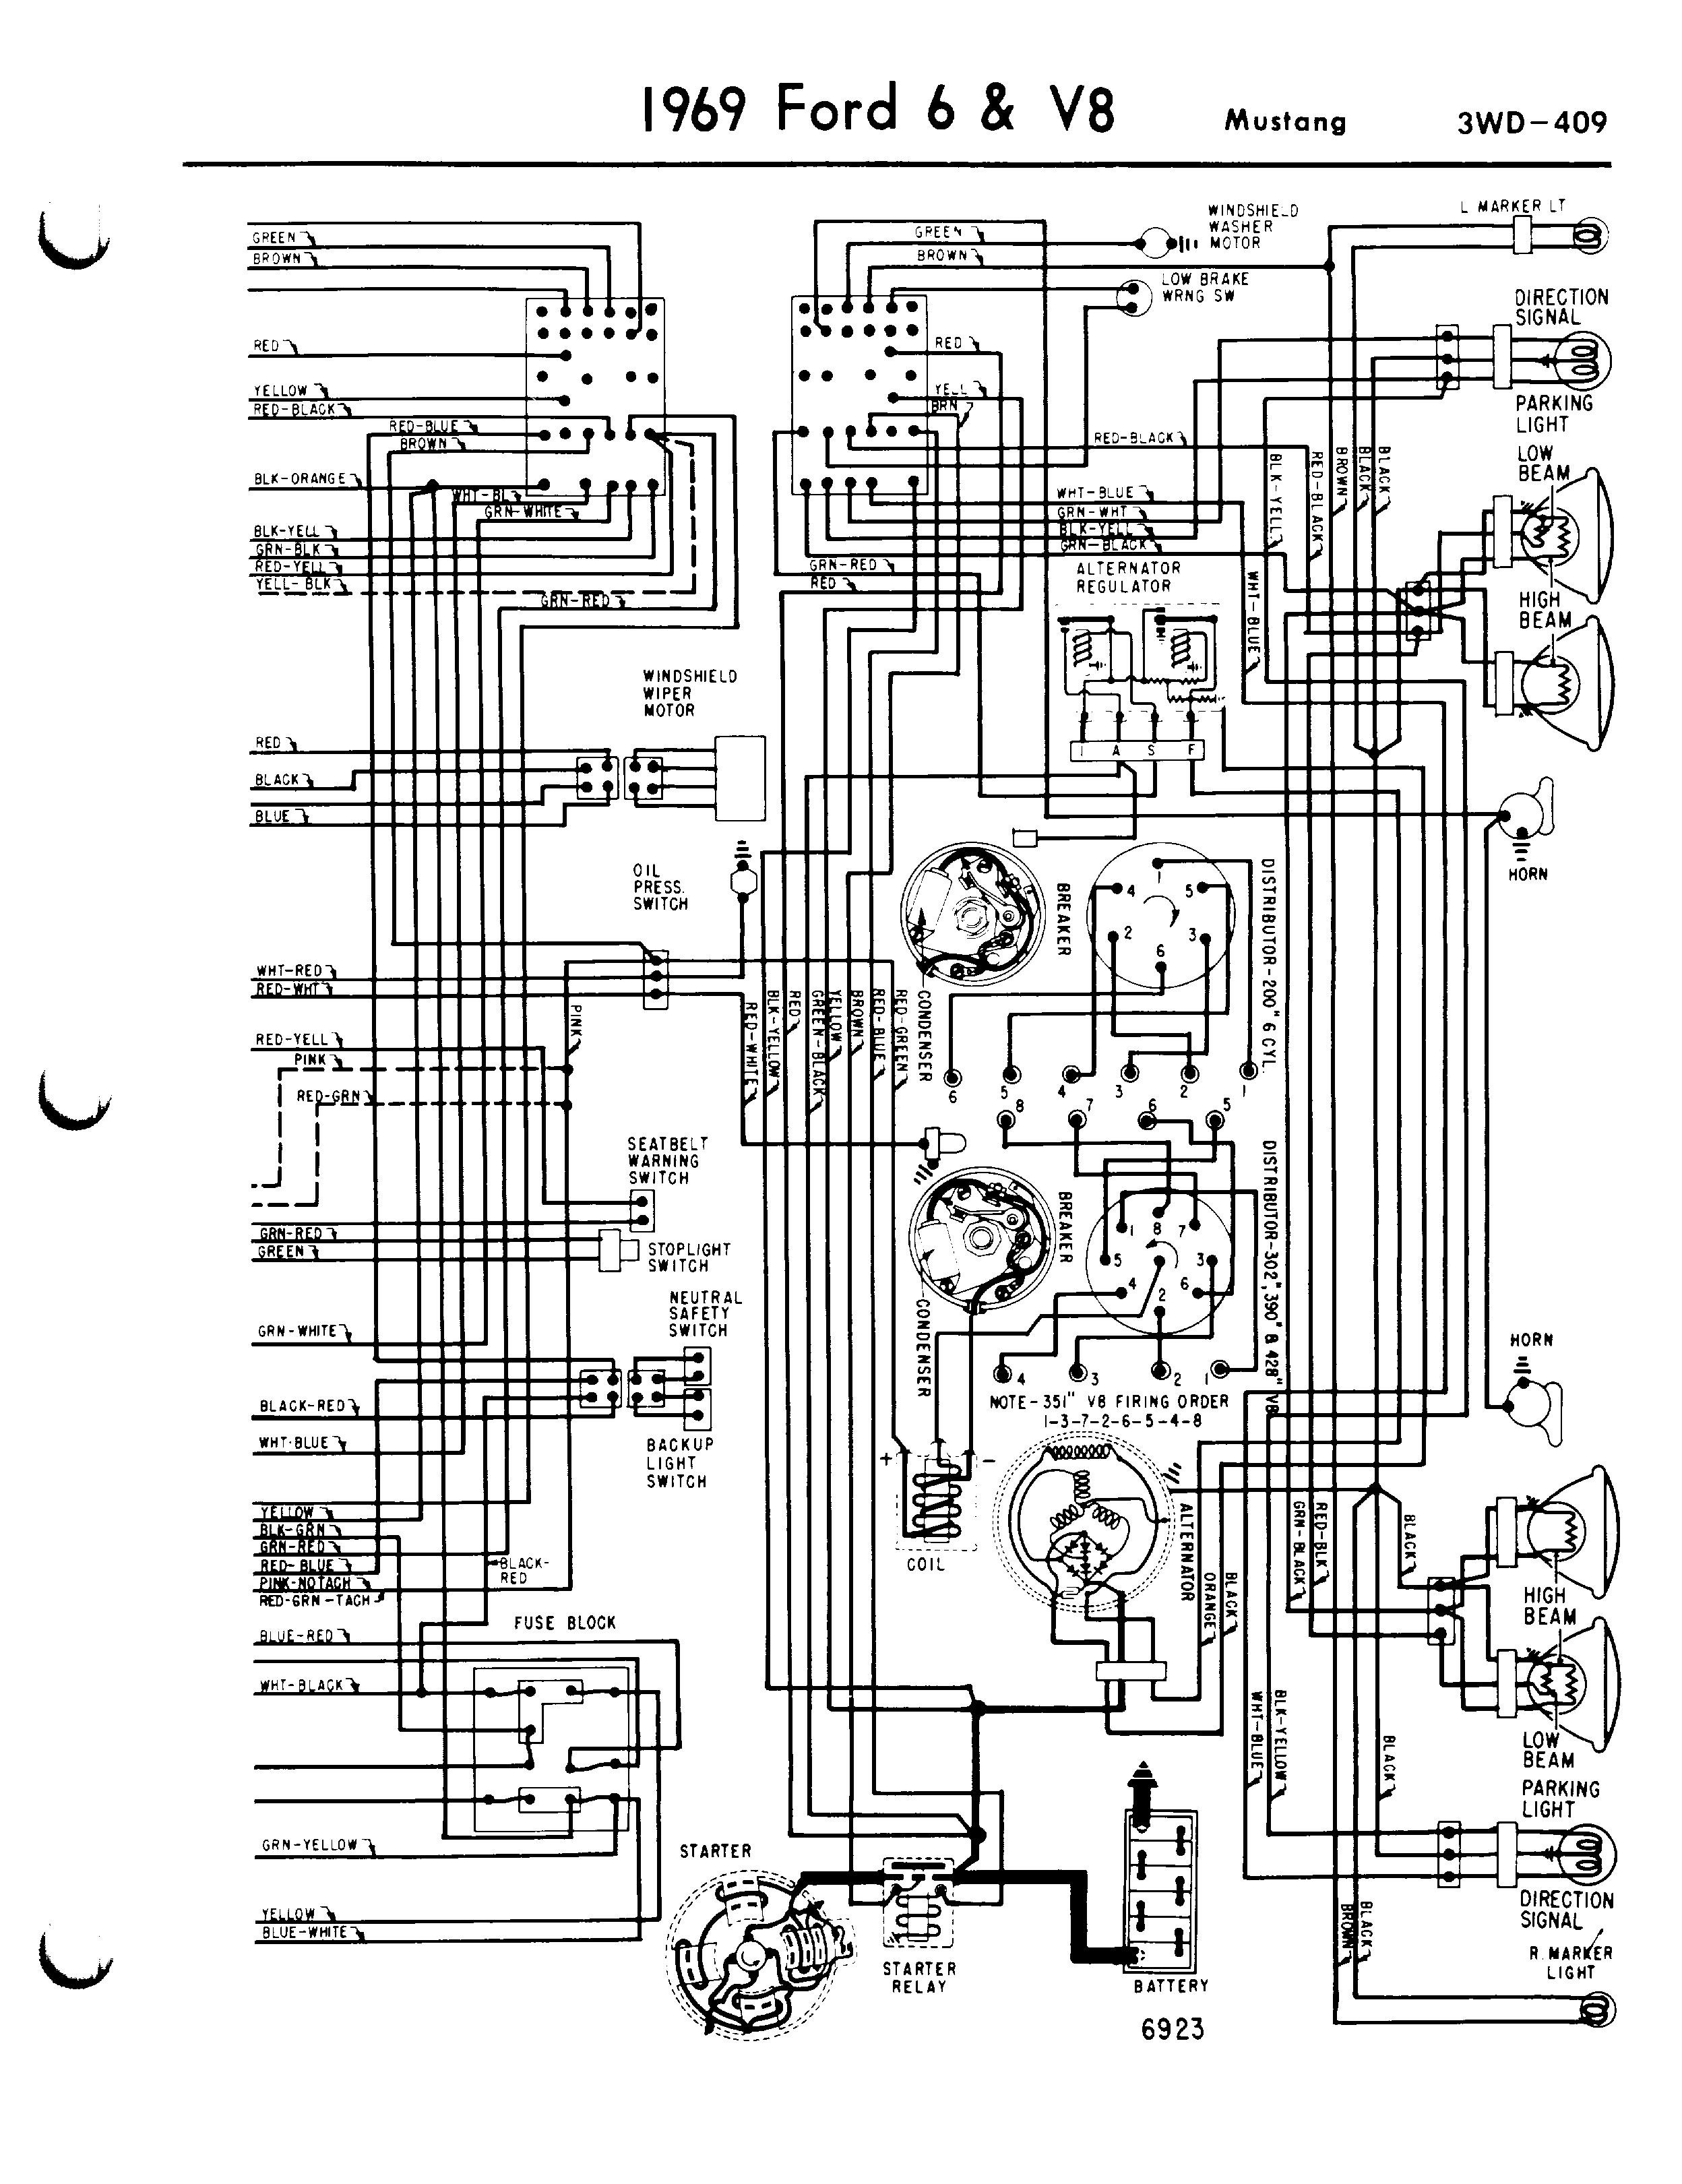 1999 Mercury Cougar Engine Diagram 1971 Cougar Ignition Diagram Wiring Diagram Of 1999 Mercury Cougar Engine Diagram